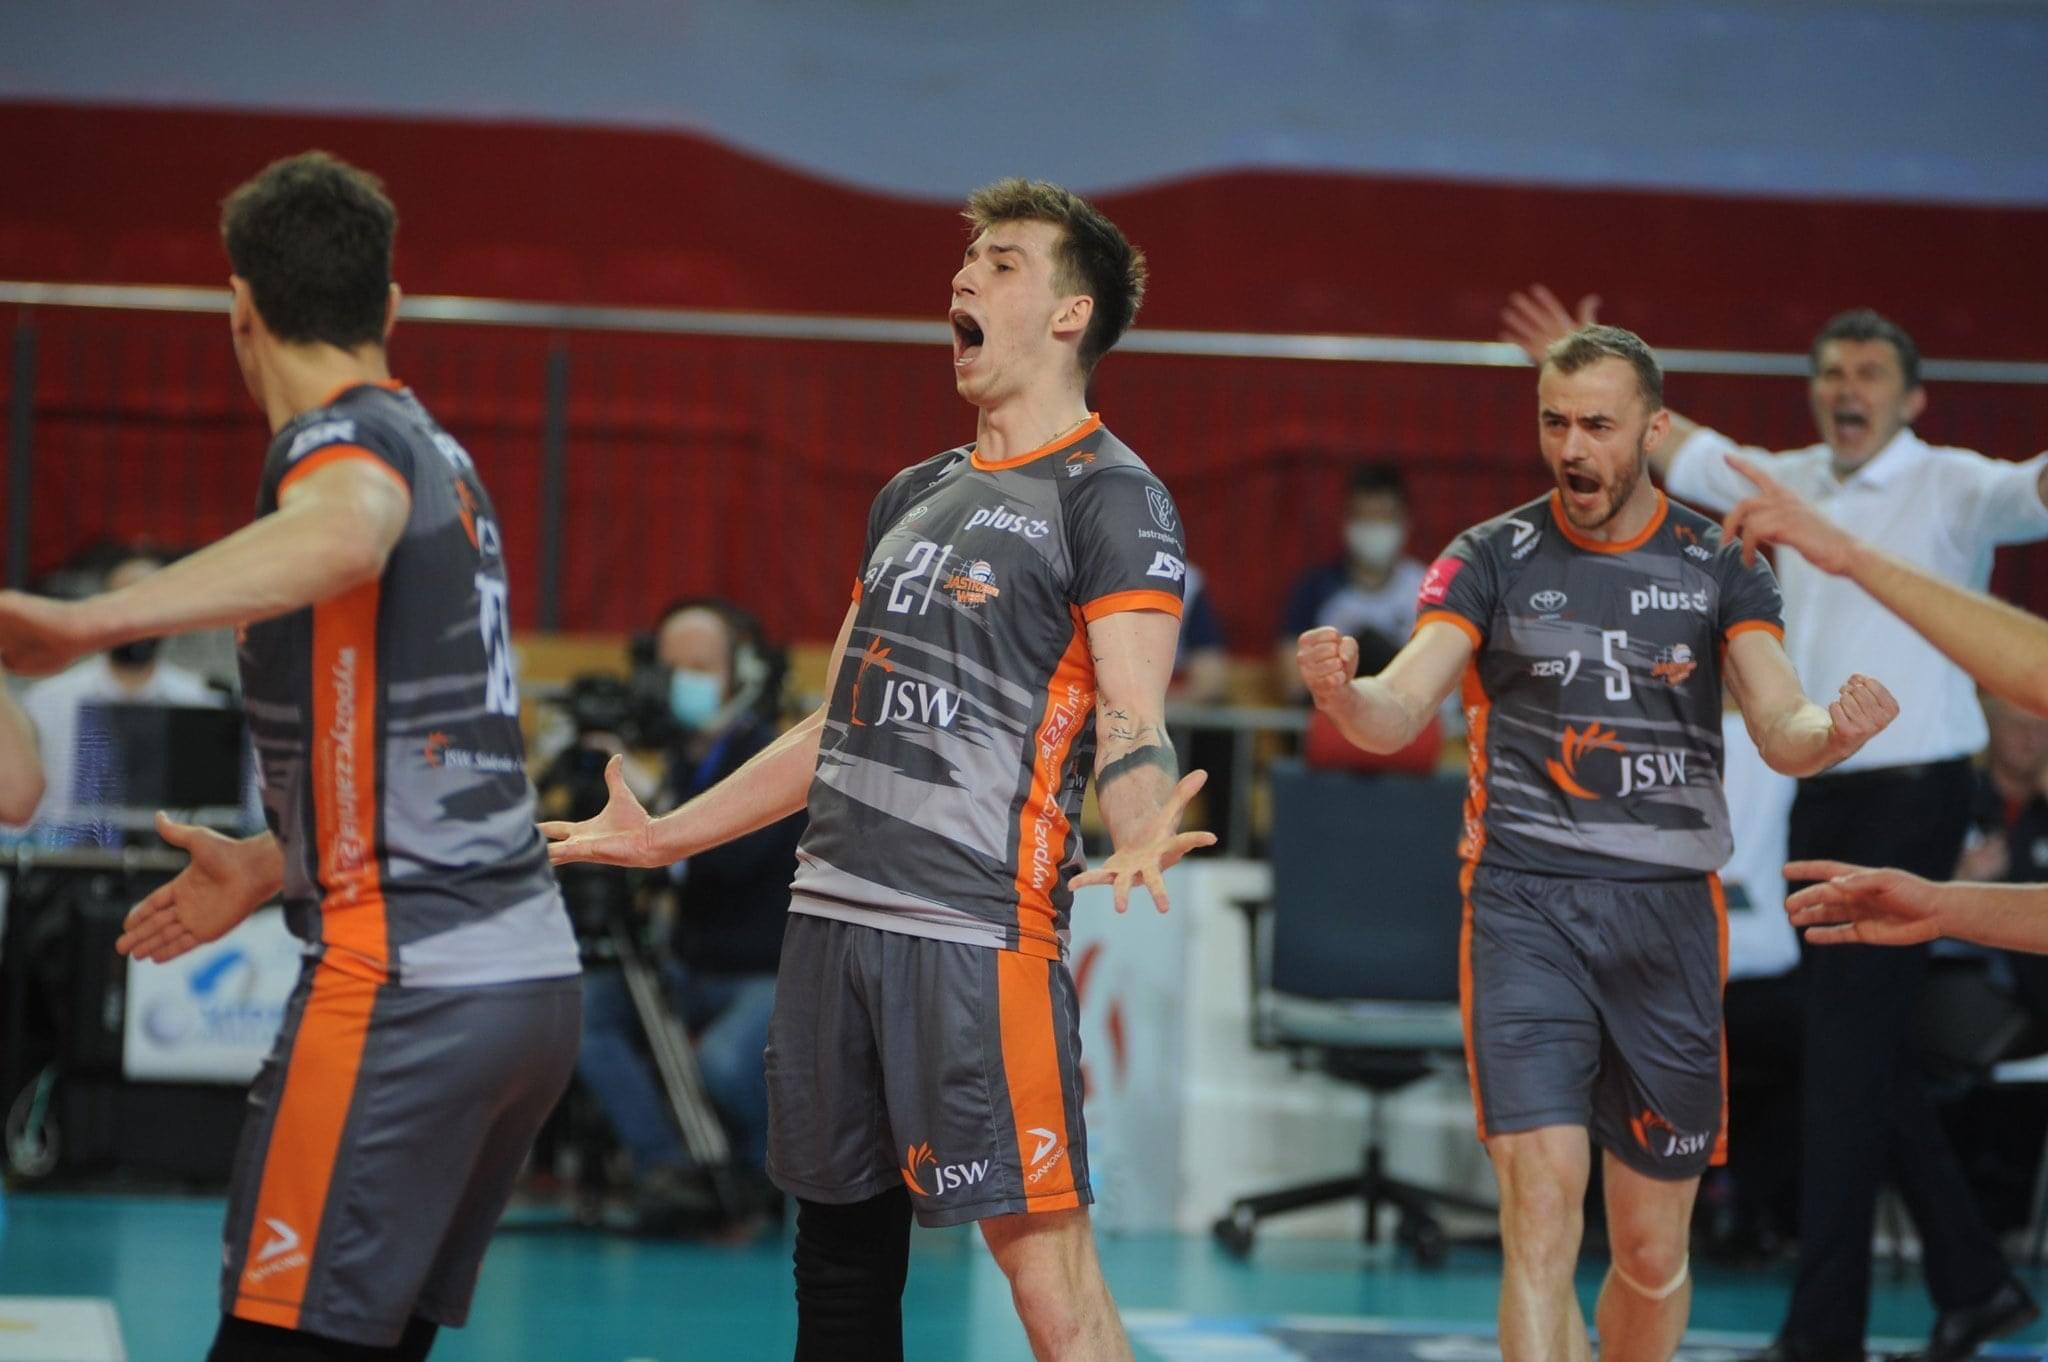 Poland: ZAKSA fall in Game 1 of finals – Jastrzębski celebrate! Warszawa win game 1 for 3rd place